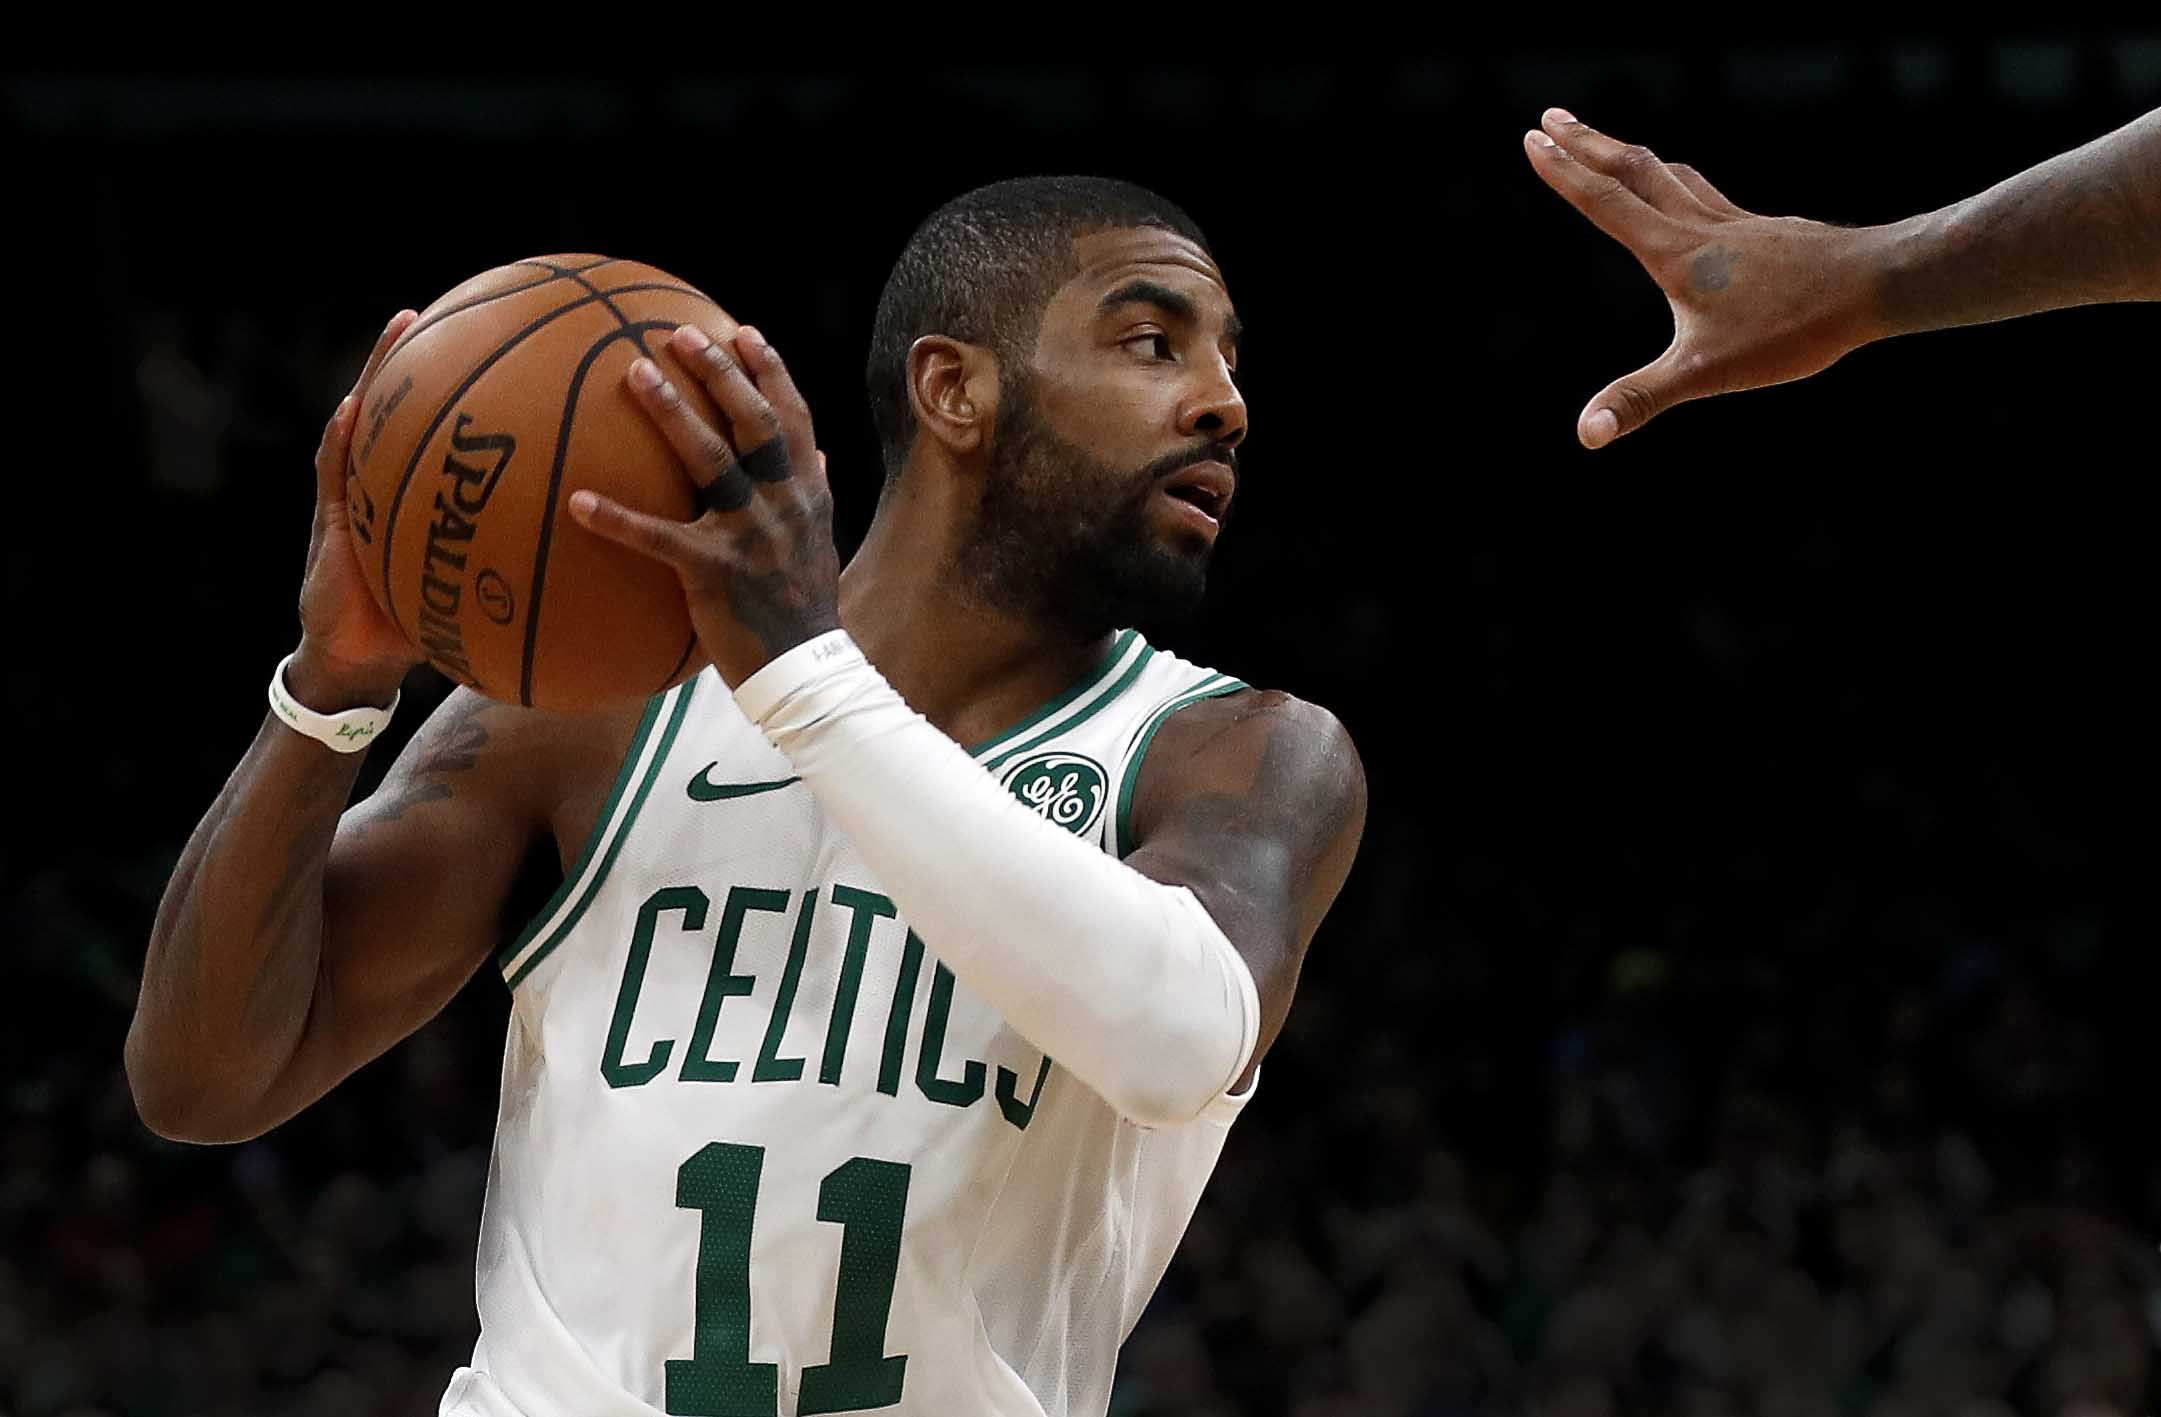 Nets are favorites to land Kyrie Irving in free agency, according to Vegas oddsmakers